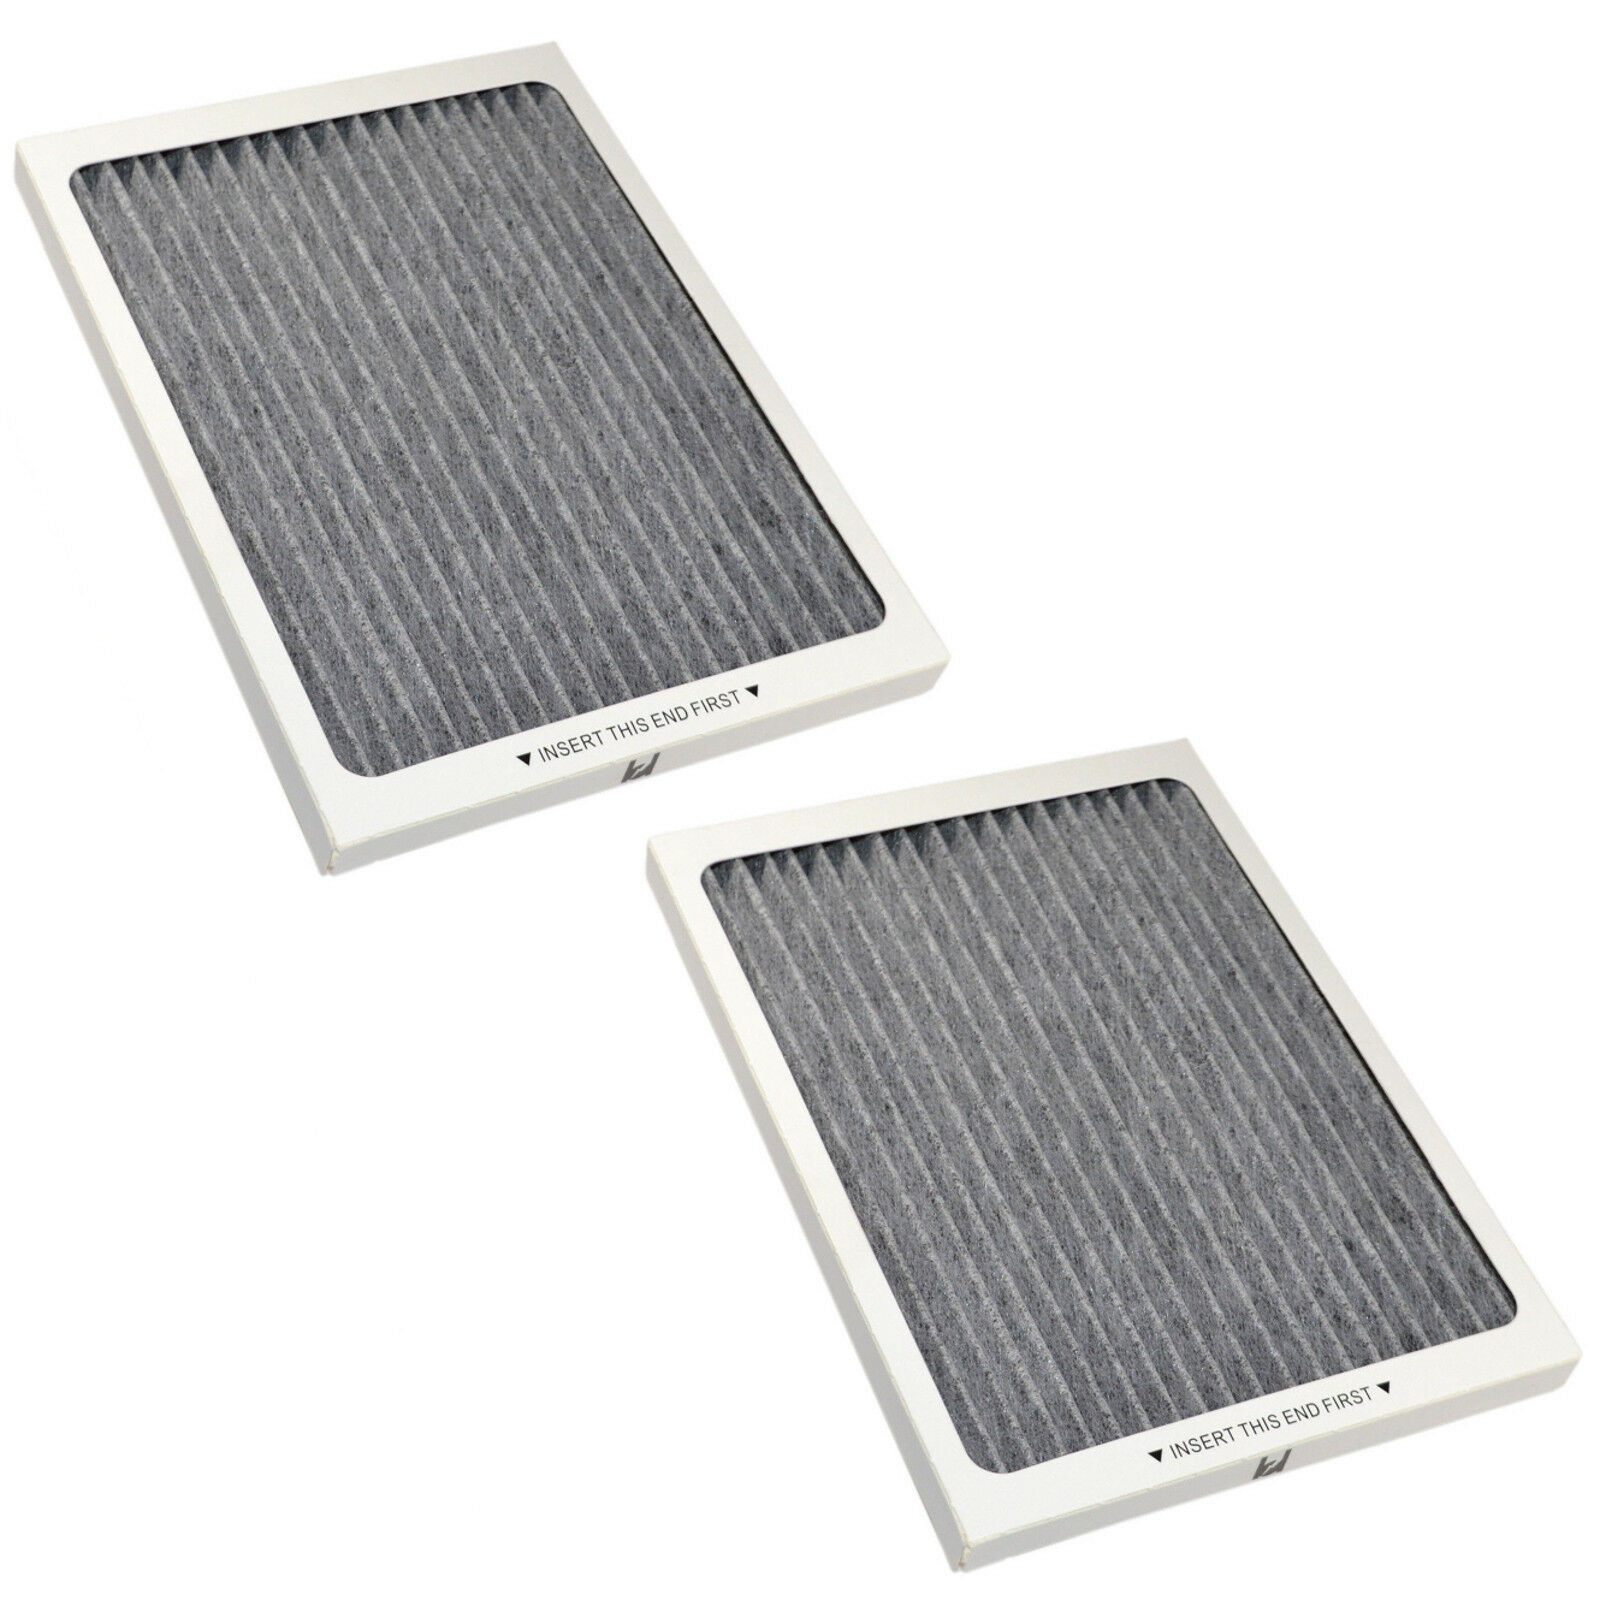 2 pack air filter for frigidaire dgh